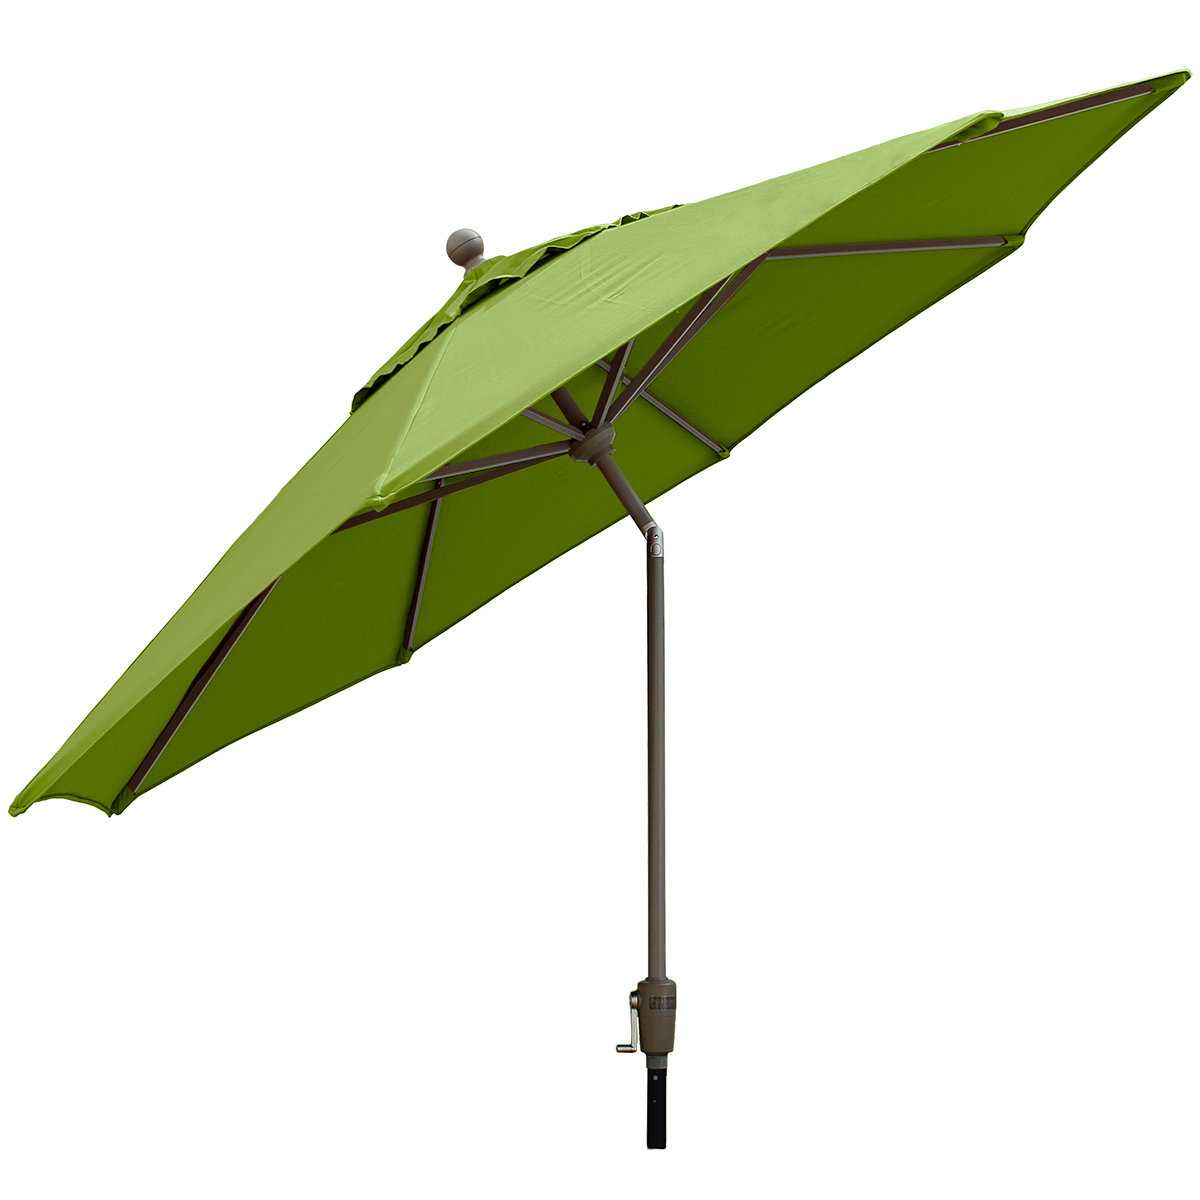 Three Posts Crowland 9' Market Sunbrella Umbrella In Most Current Crowland Market Sunbrella Umbrellas (View 17 of 20)